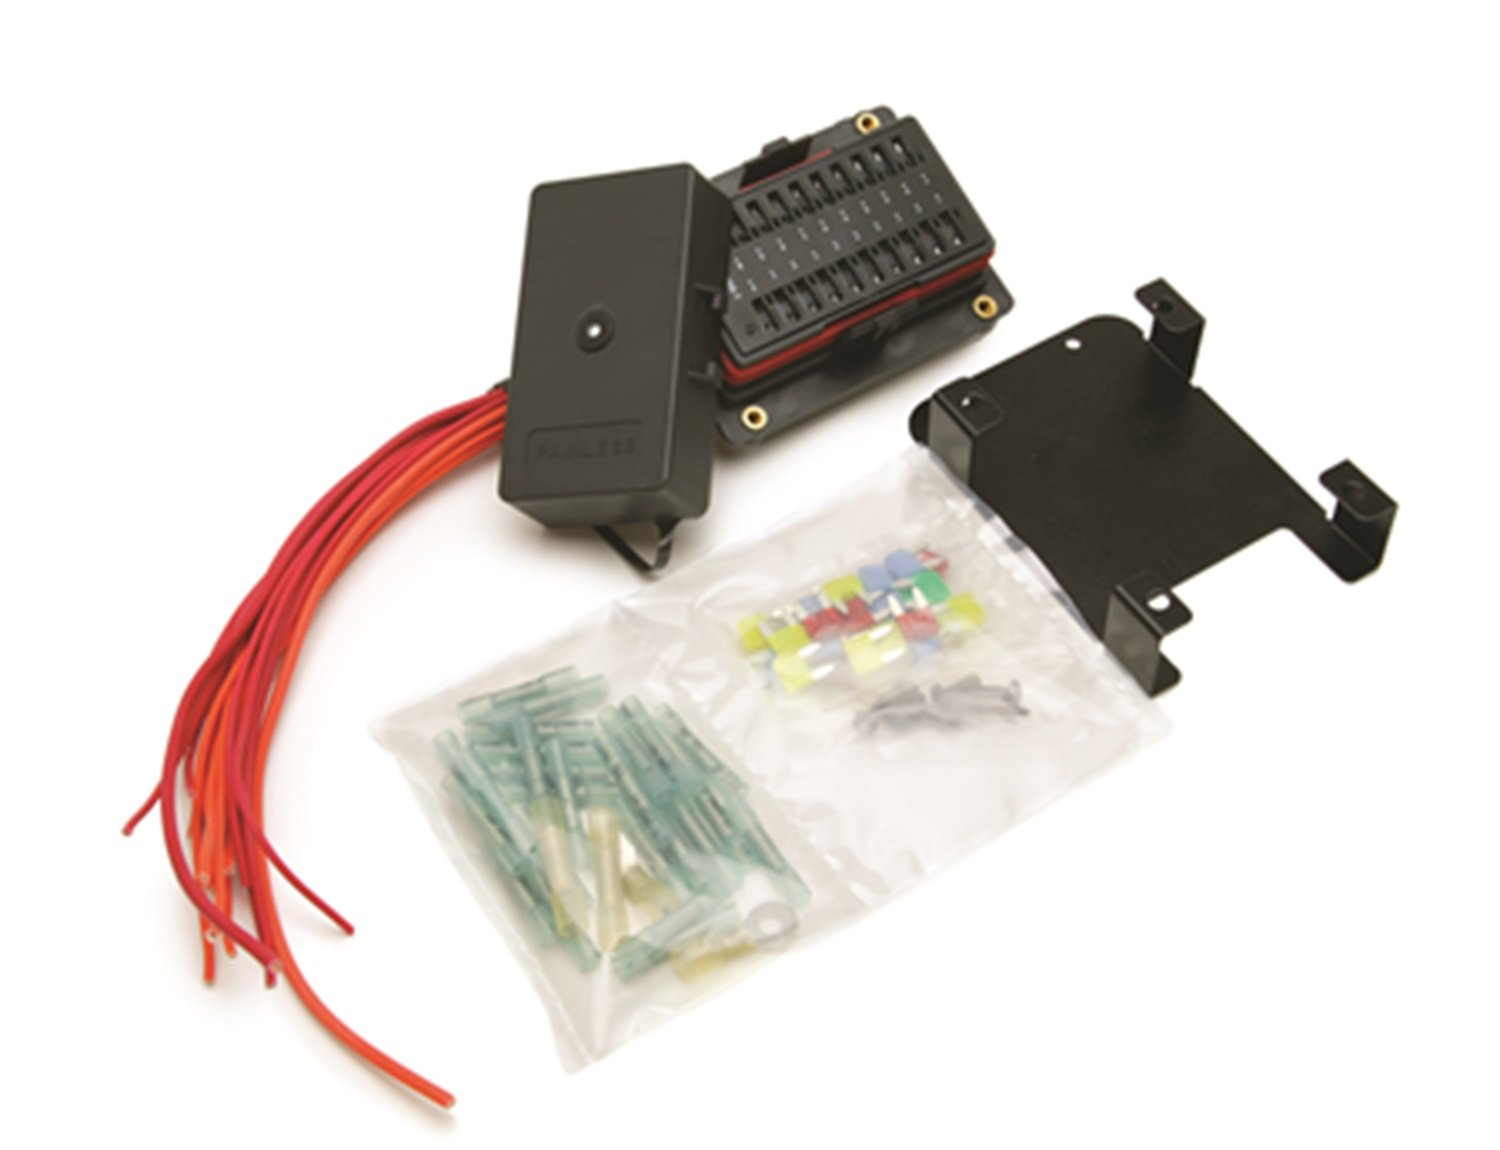 616pRAoZYlL._SL1500_ amazon com painless 30004 20 circuit fuse block kit automotive  at eliteediting.co